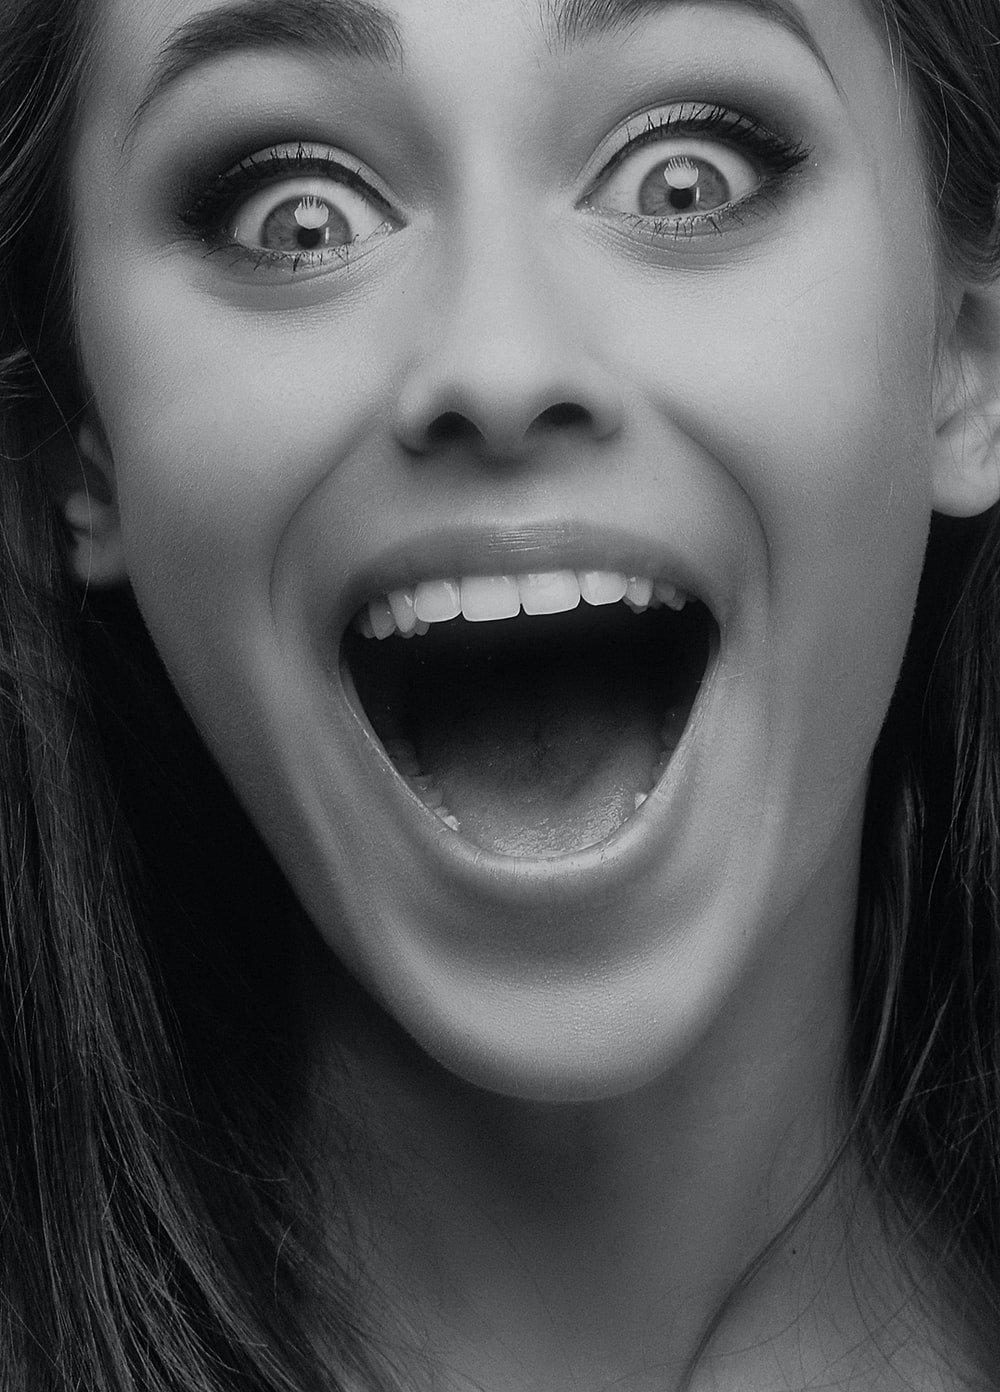 grayscale photo of woman open mouth